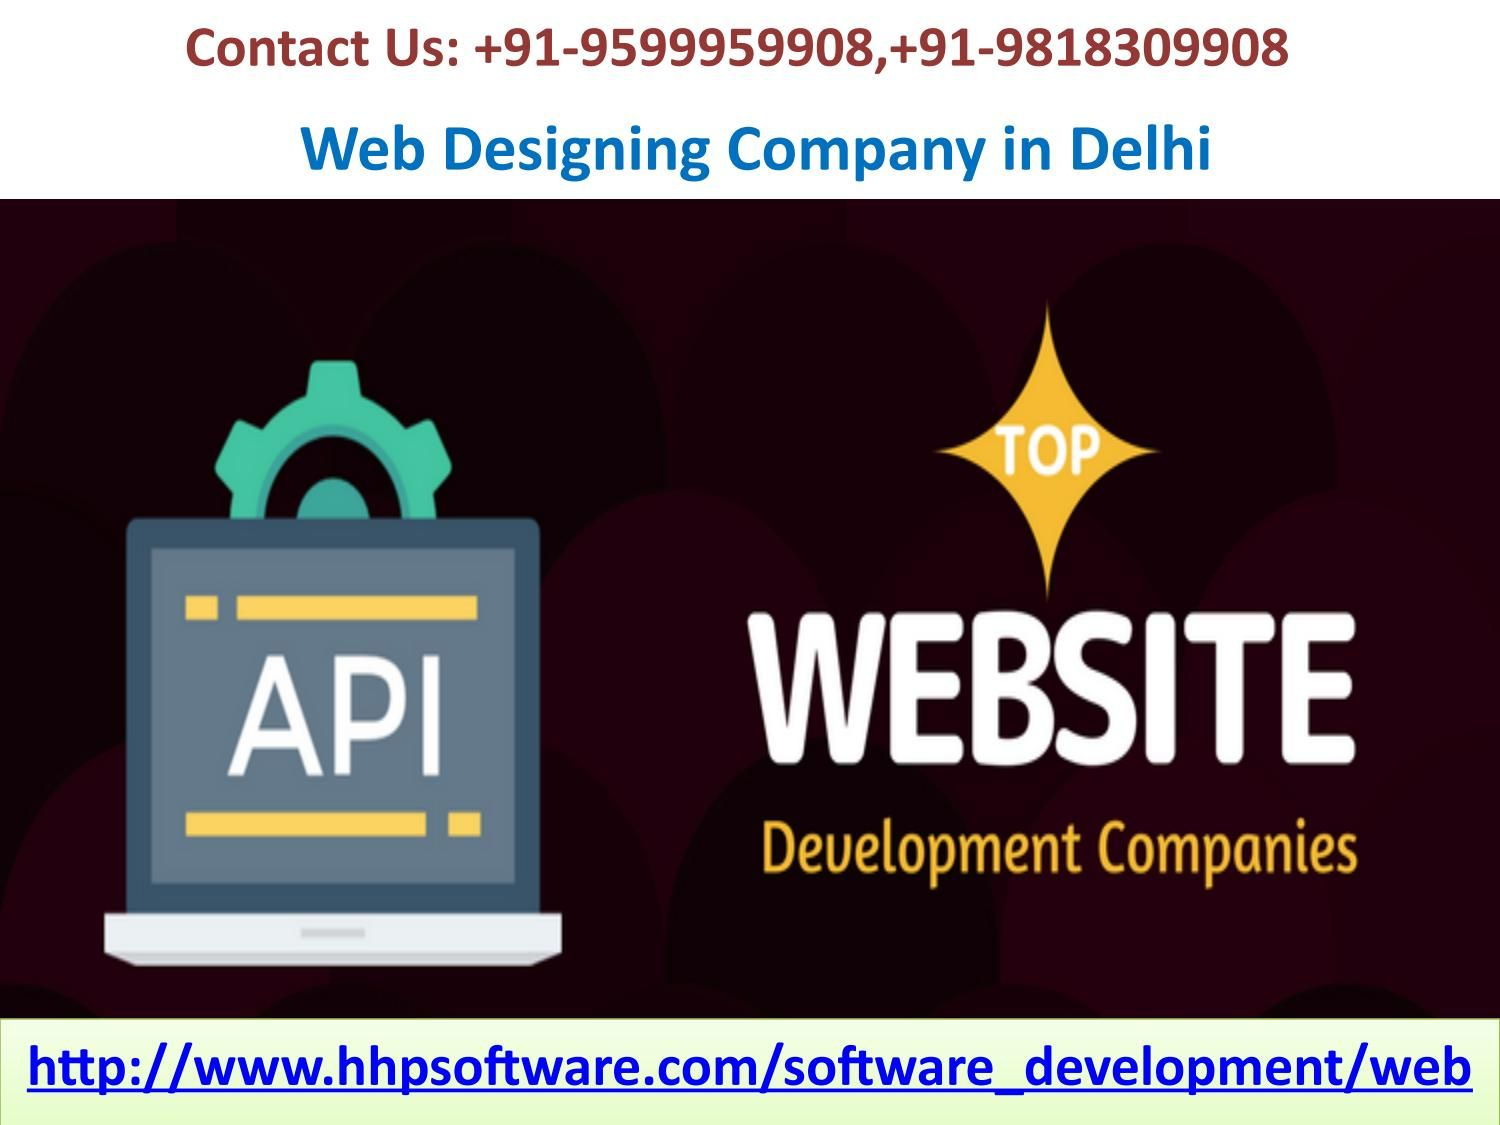 Languages Used By Web Development Company In Delhi Ncr For Development 0120 433 5876 Web Development Company Web Development Development